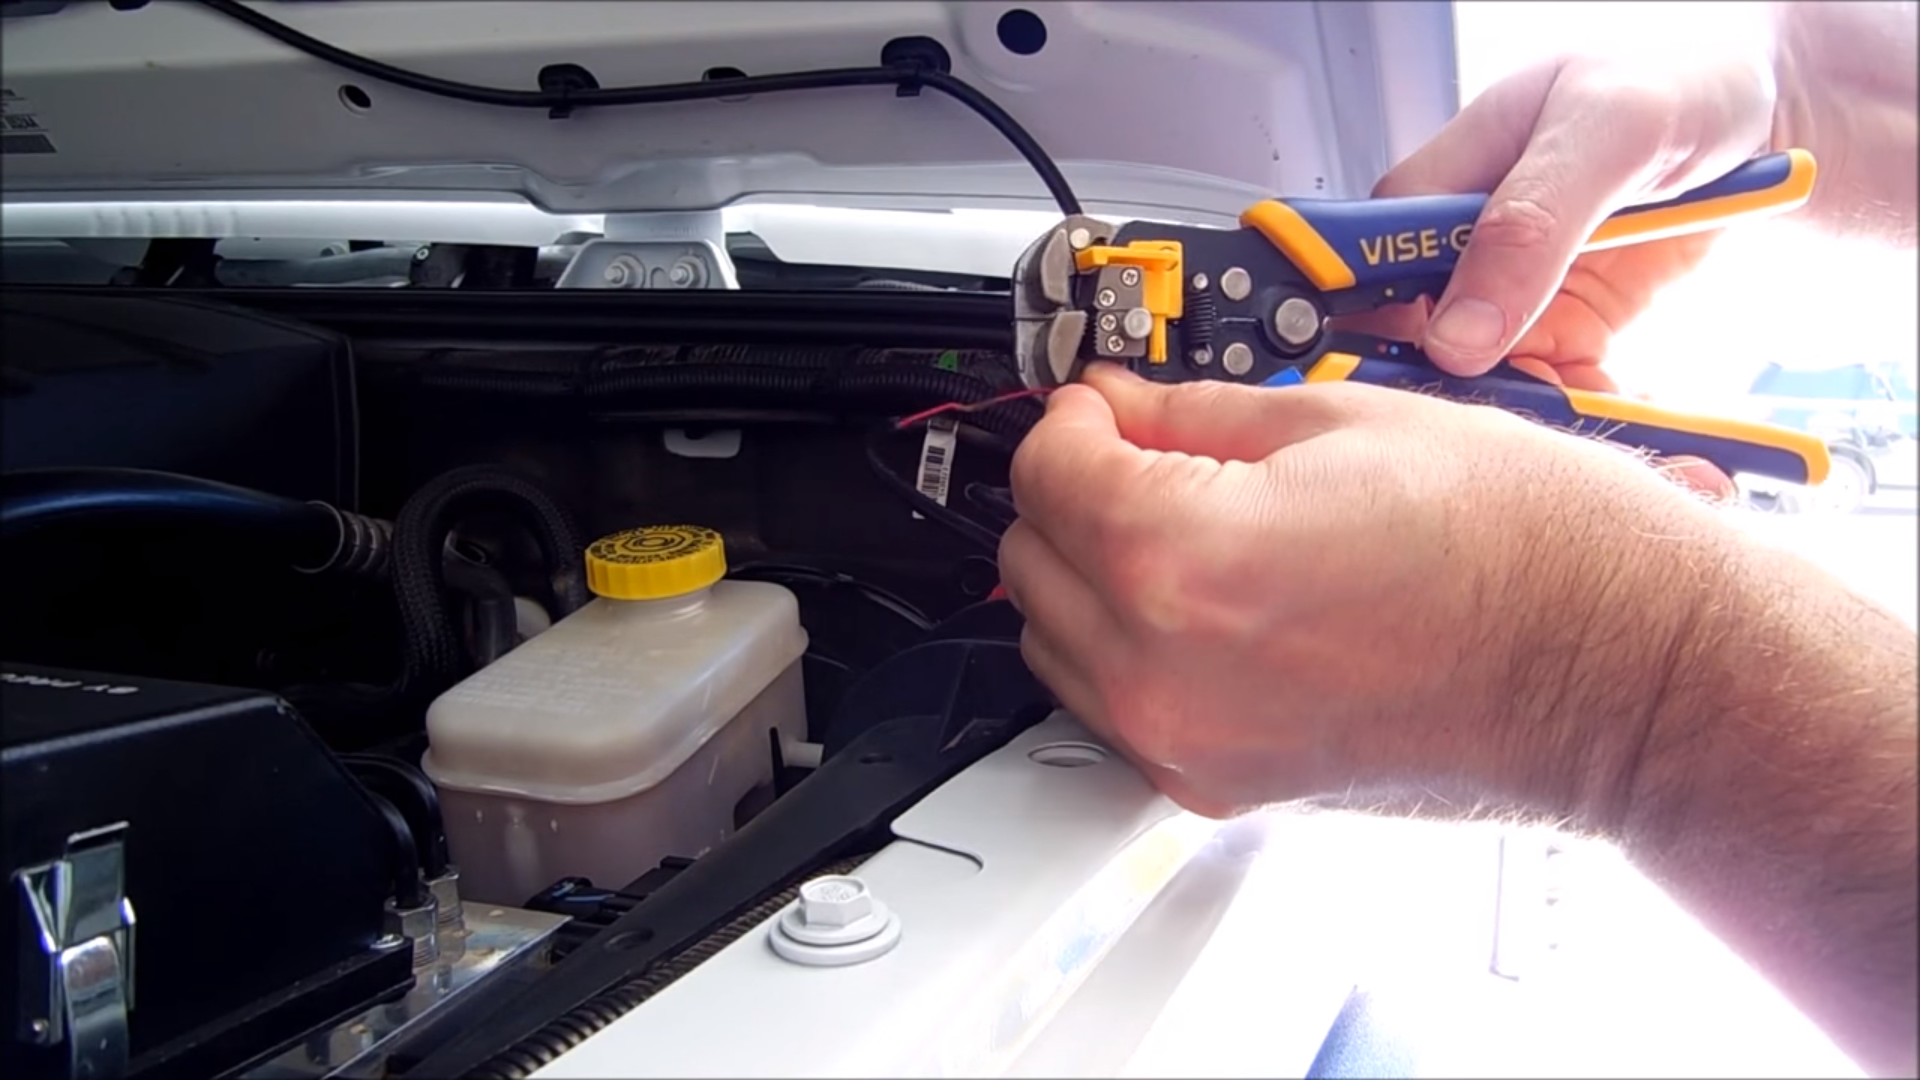 Jeep Wrangler Jk 2007 To Present How Install Rock Lights Forum 2004 Wiring Connector Crimp Wire Stripping